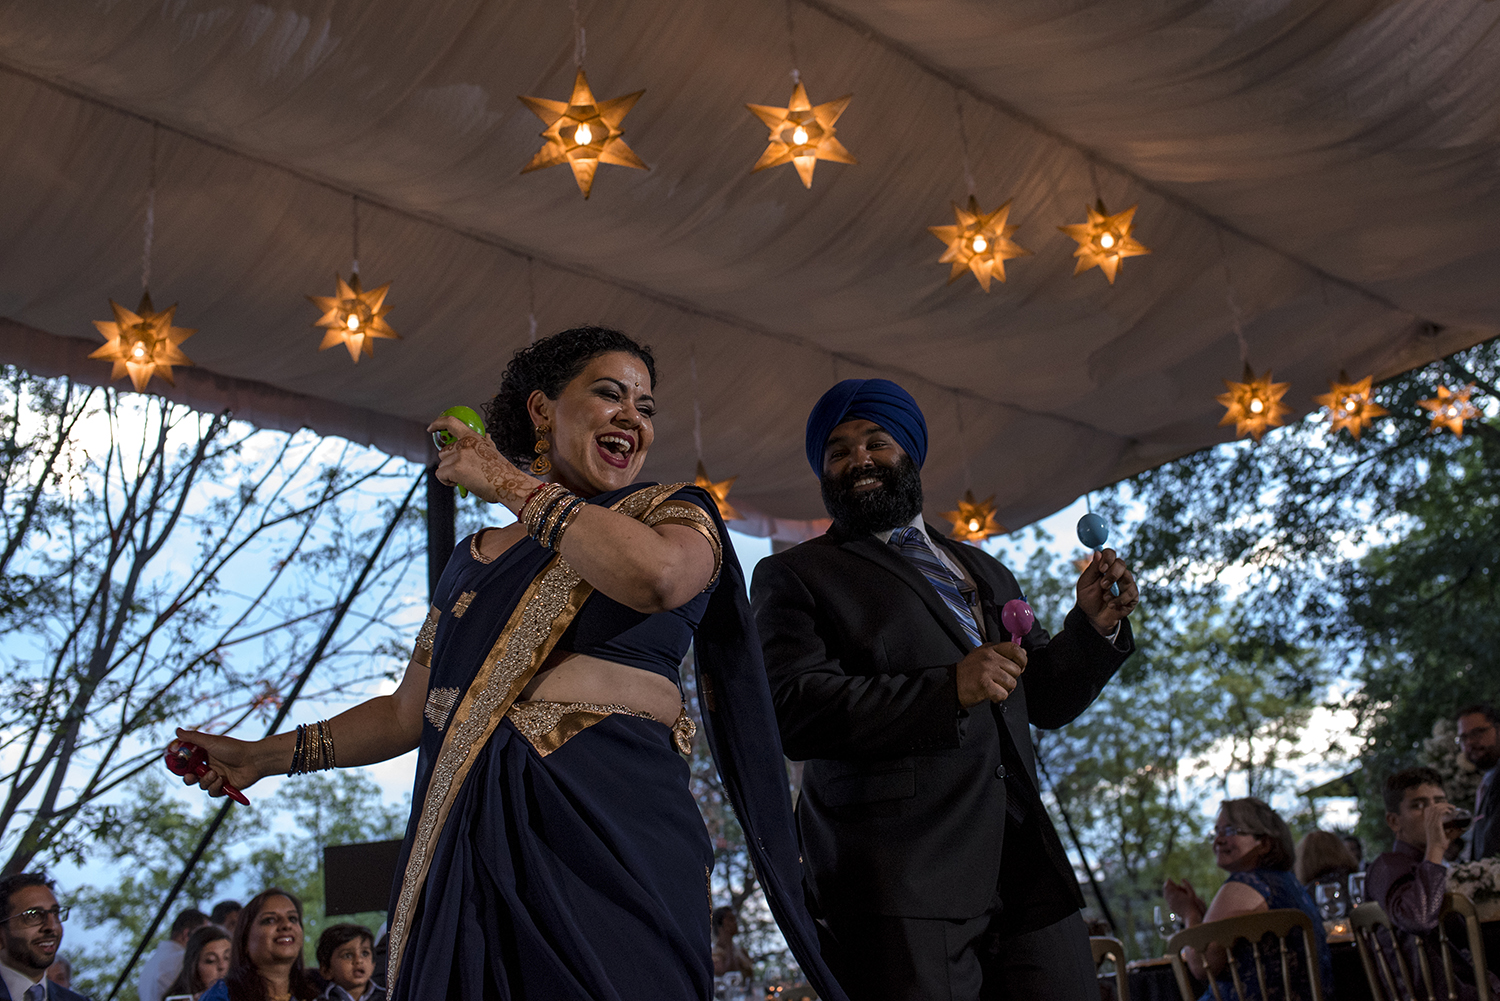 indian_wedding_san_miguel_de_allende_chio_garcia_photographer (46).jpg